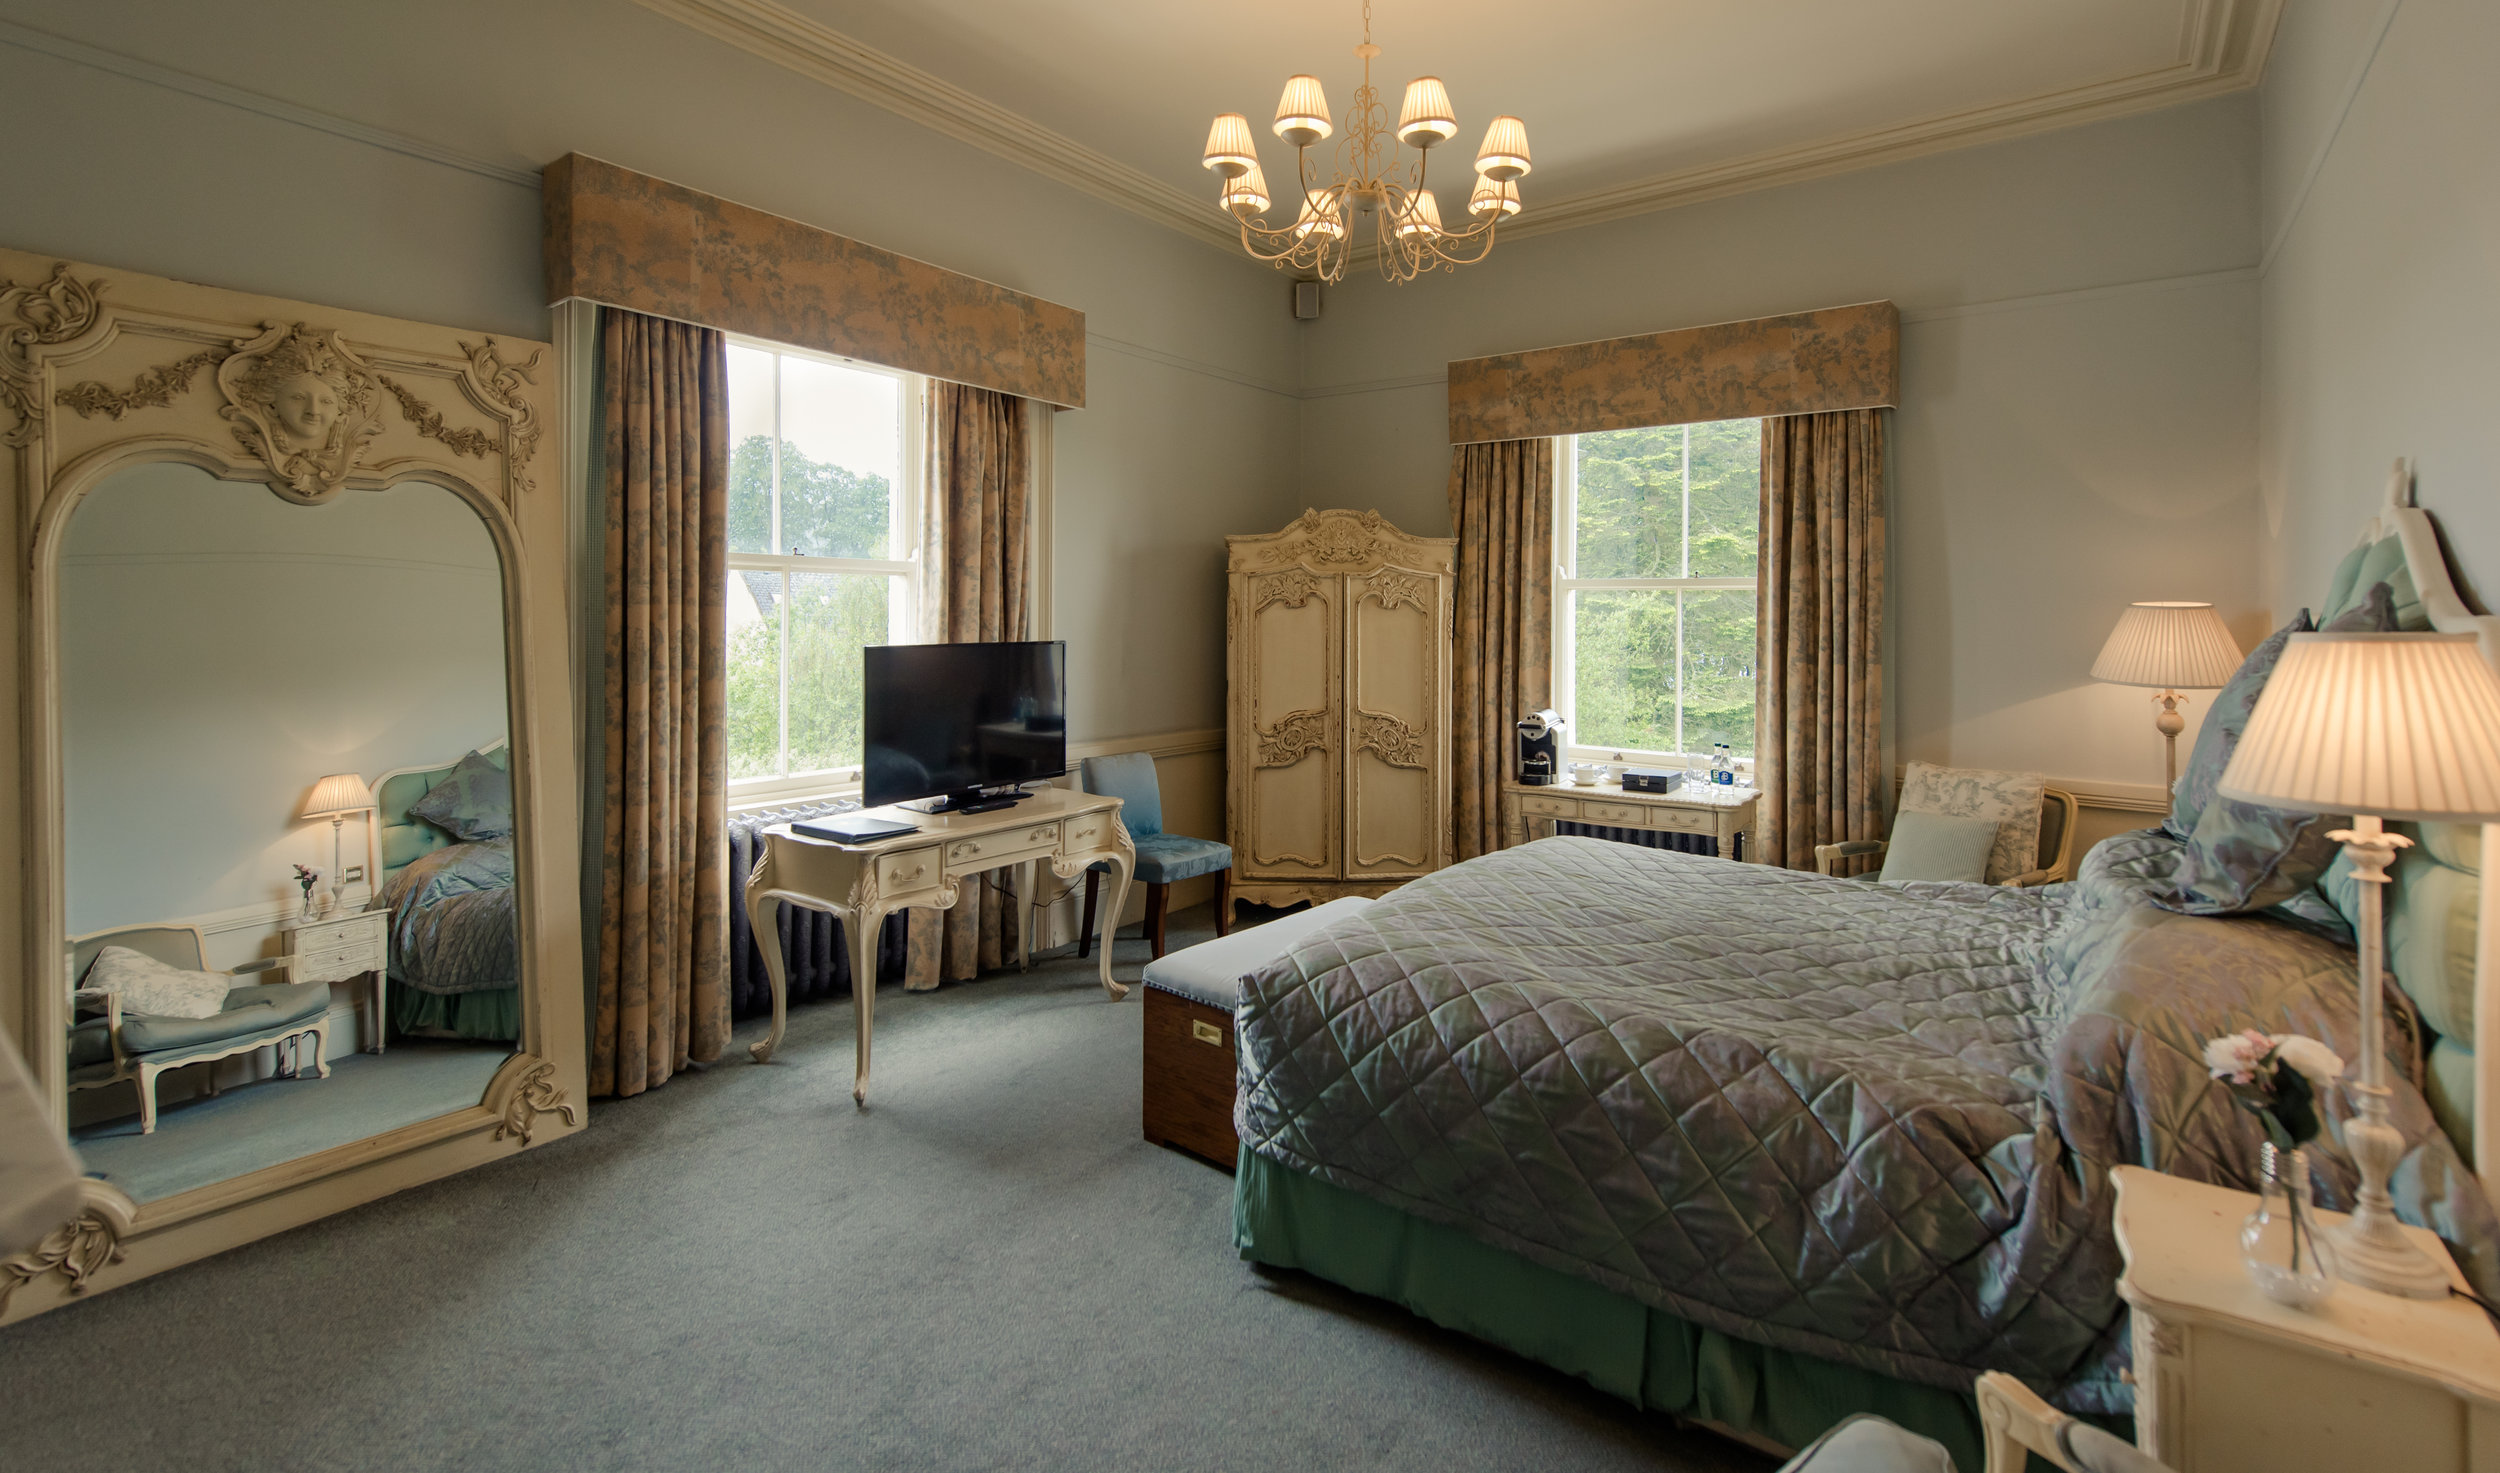 Tulfarris Hotel & Golf Resort Manor House large luxurious bedroom with large mirror.jpg